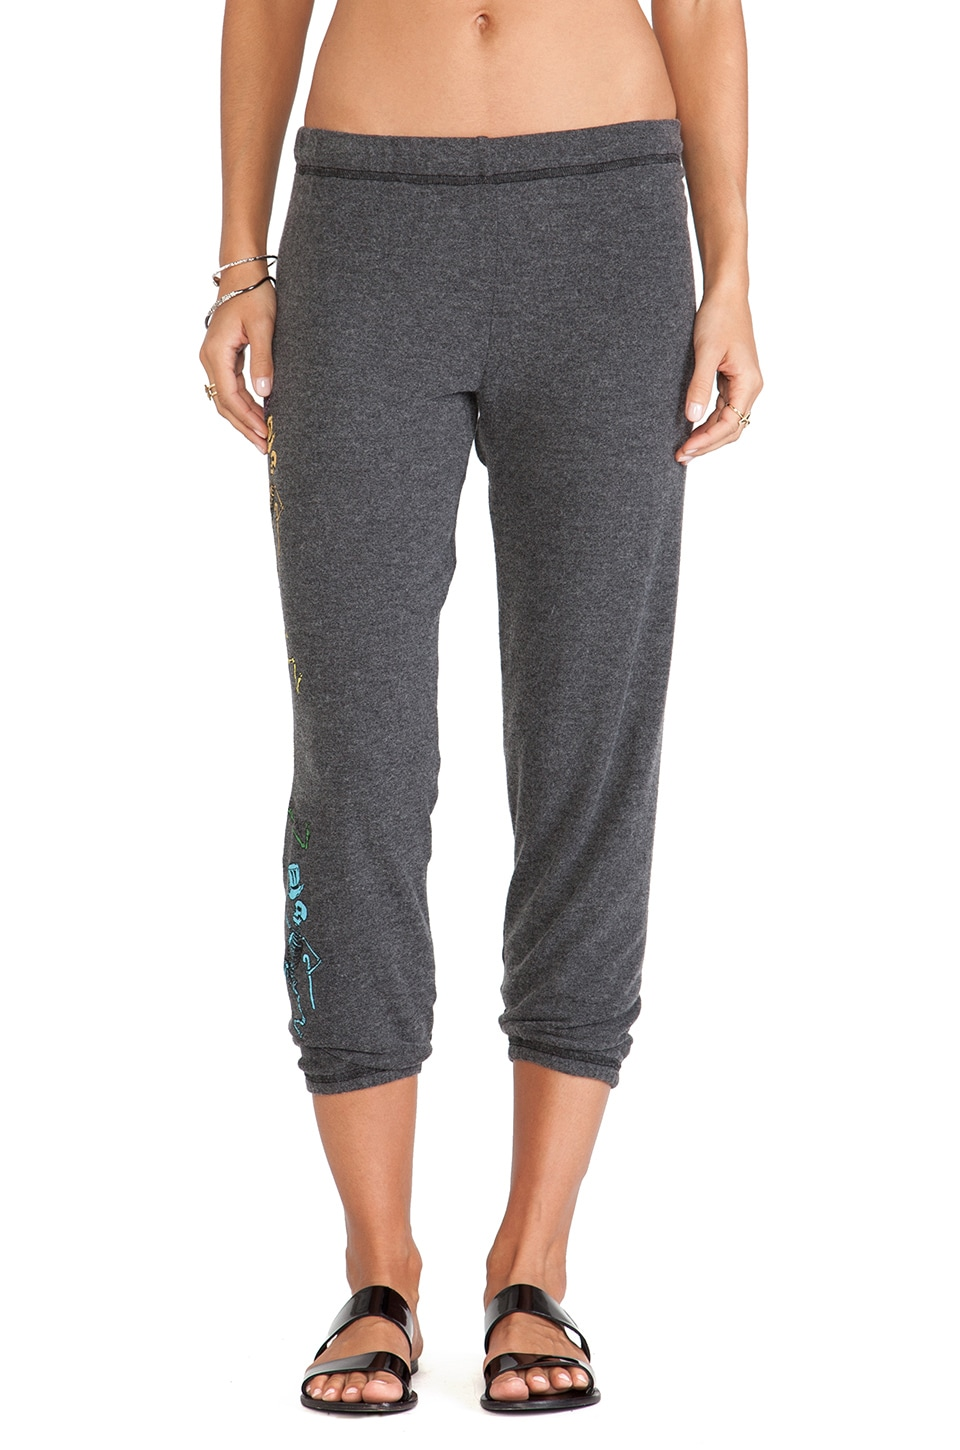 Lauren Moshi Alana Grateful Dead Skeleton Leg Sweatpants in Black